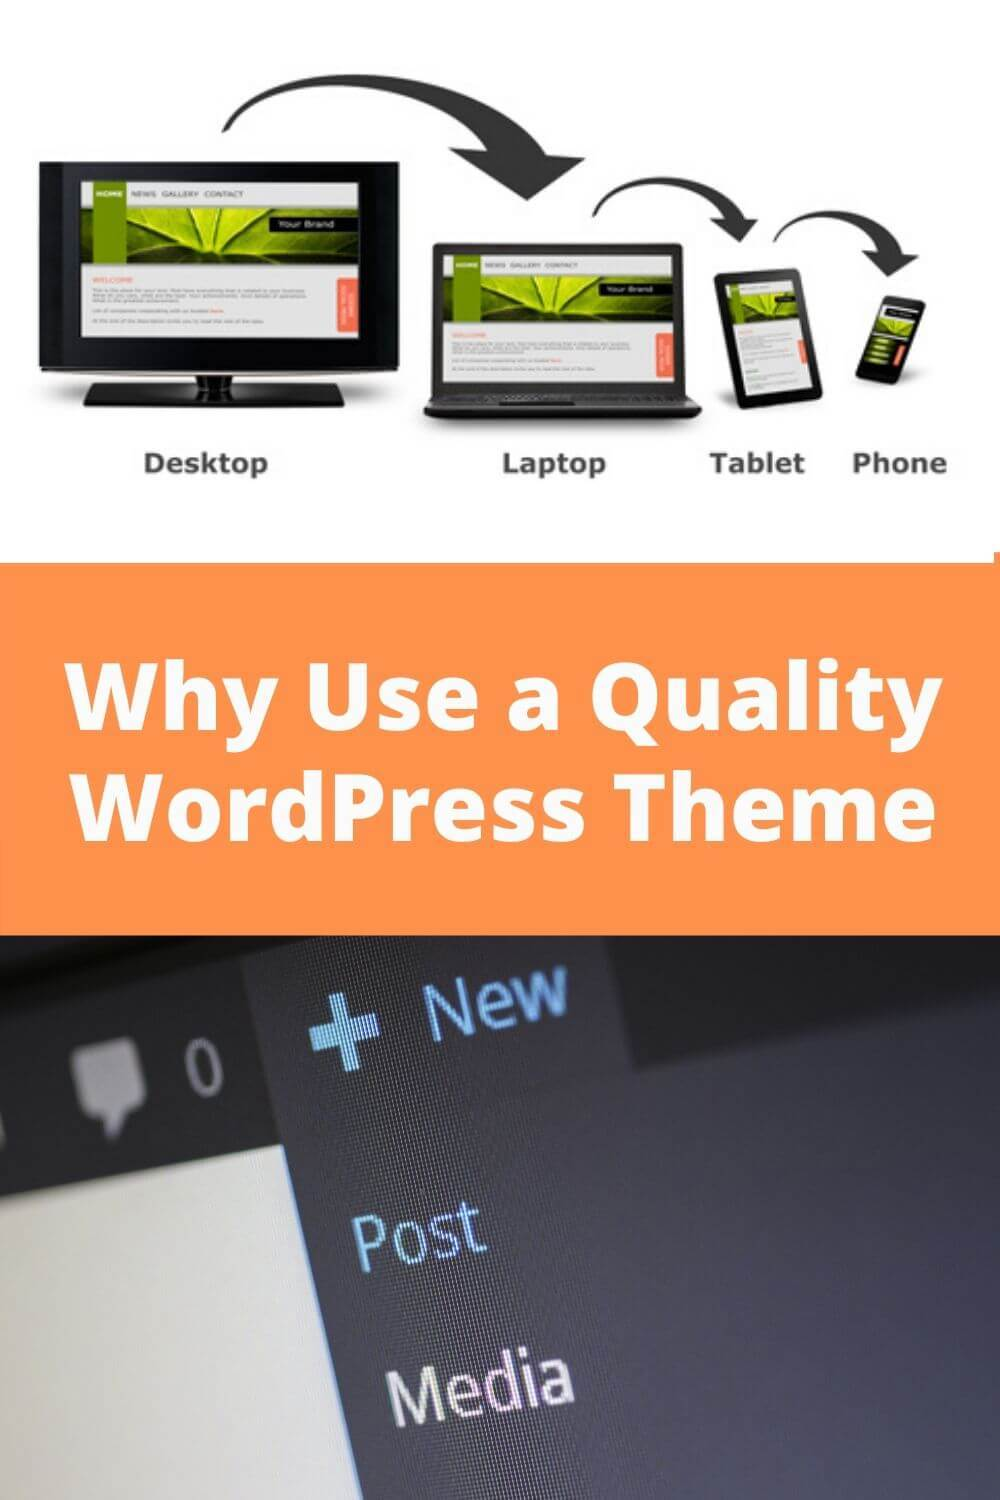 Why yse a quality WordPress theme